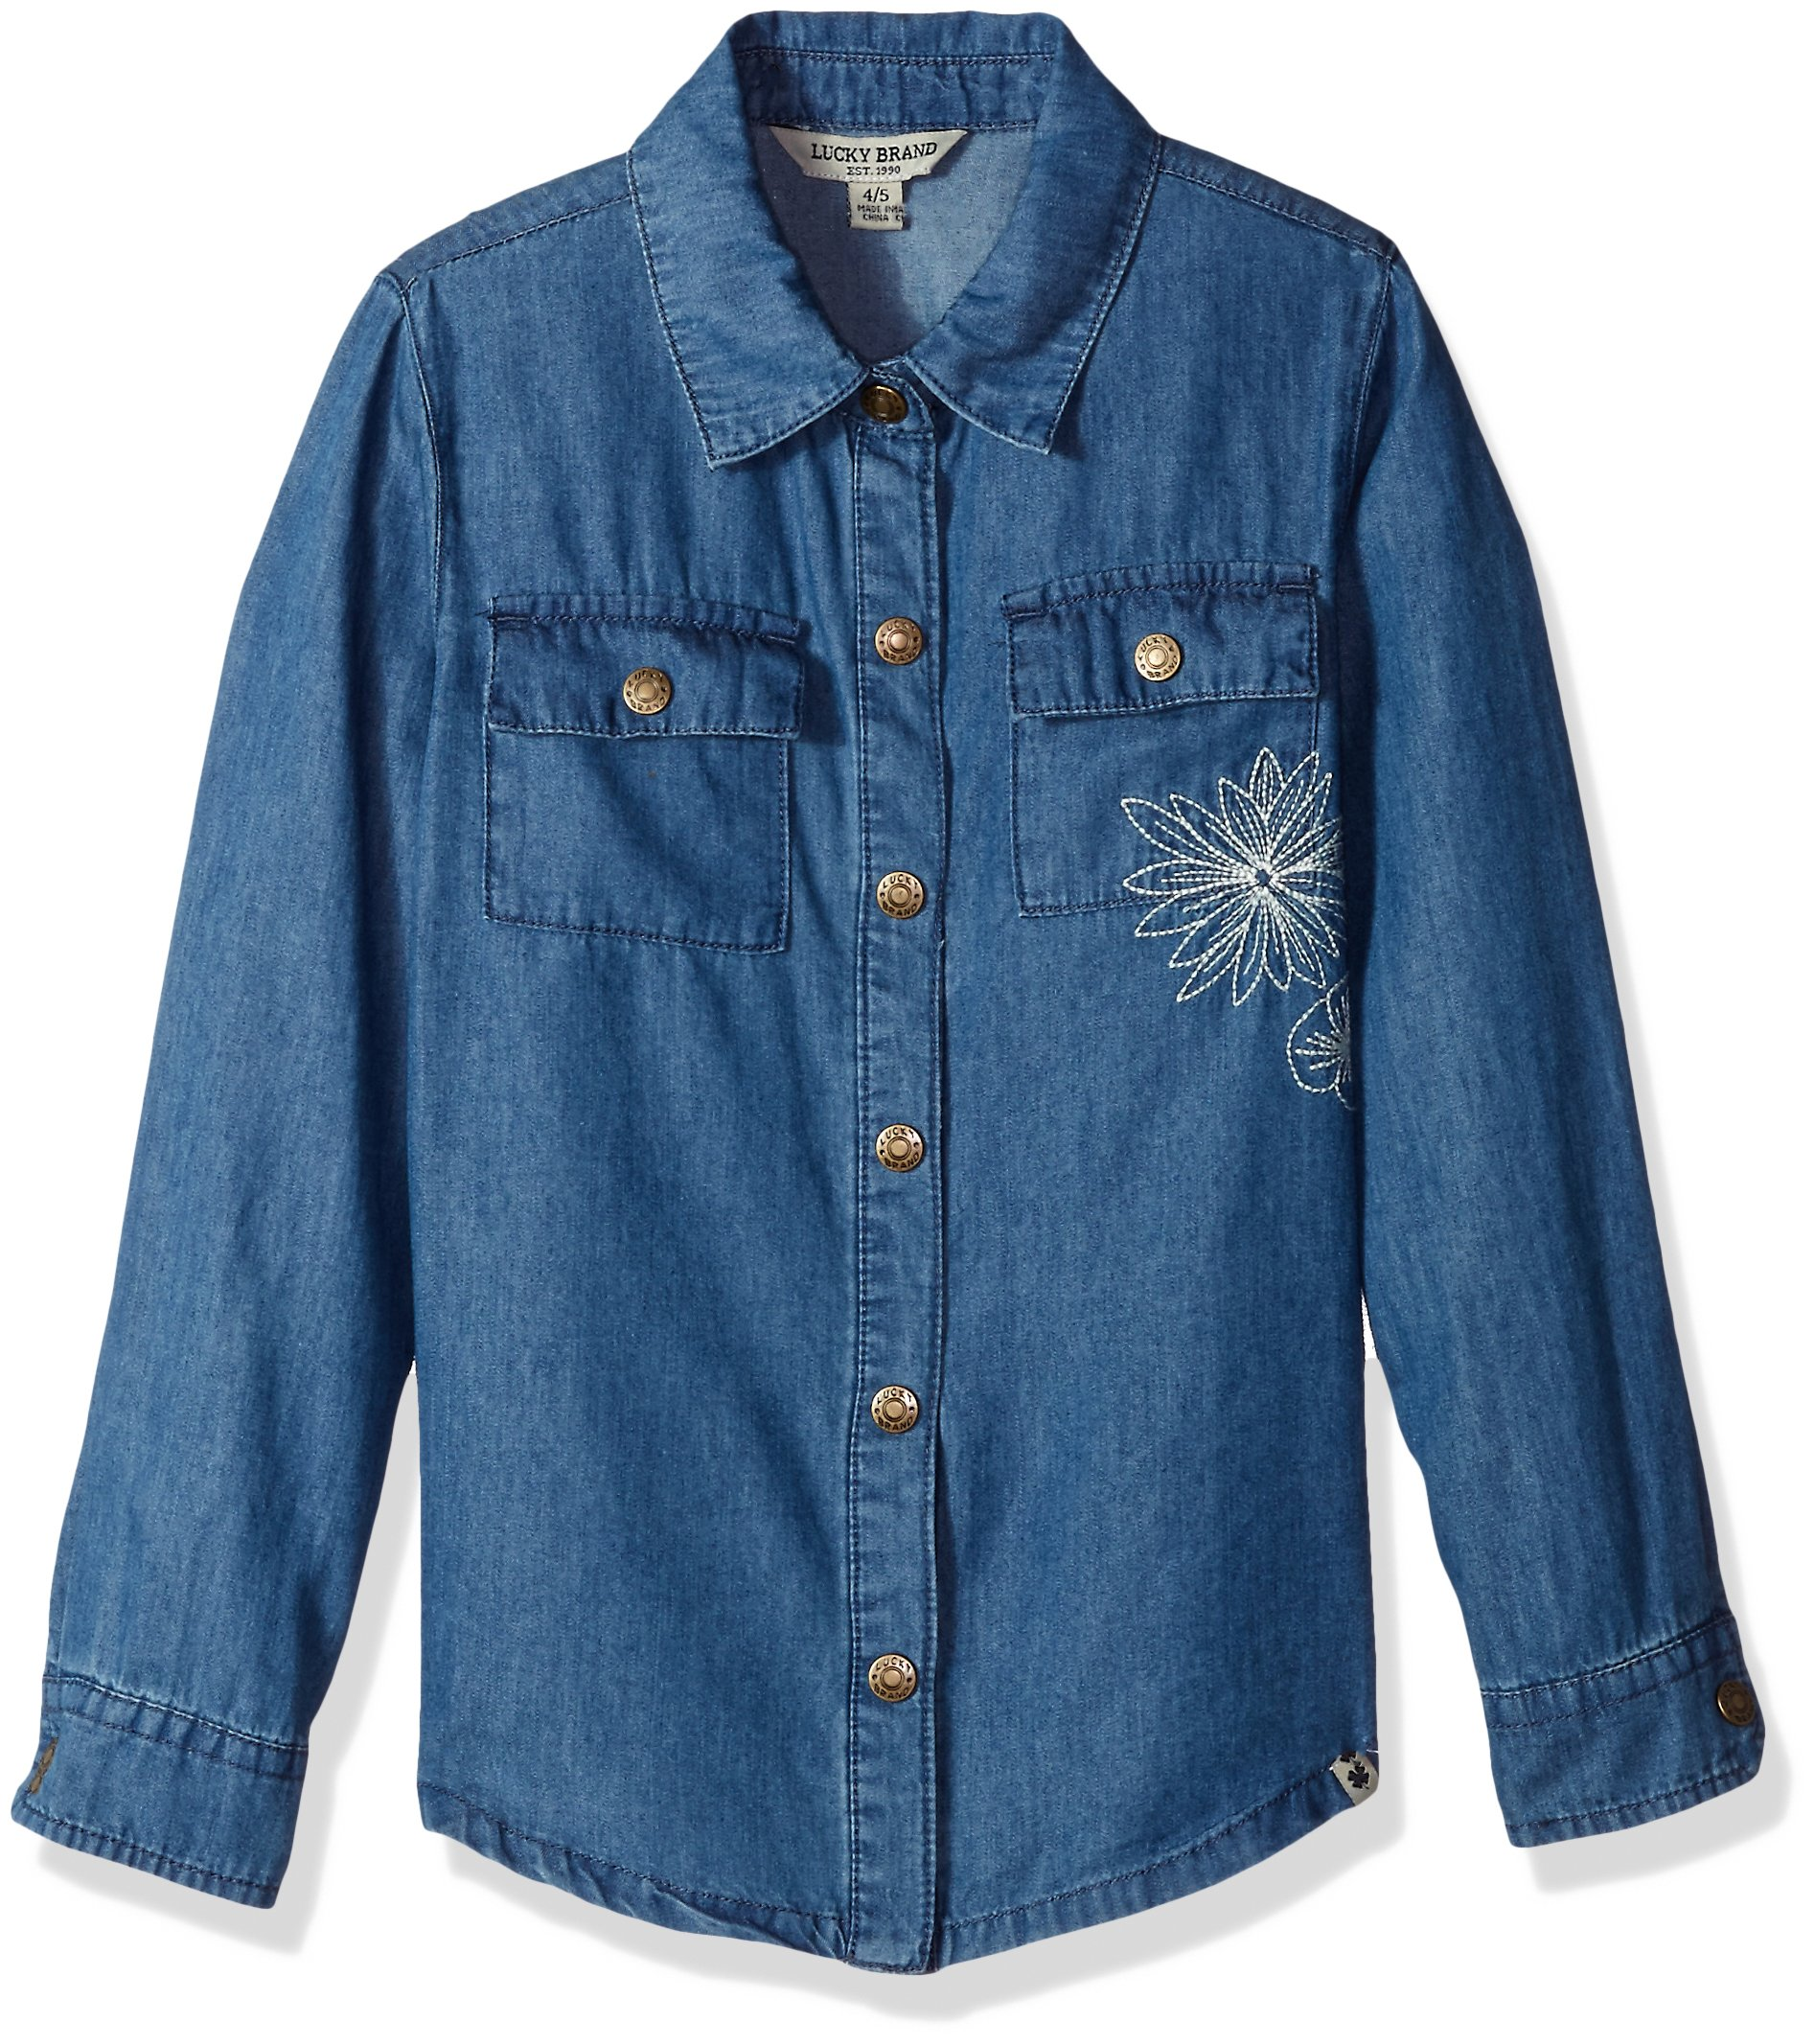 Lucky Brand Big Girls' Chambray Shirt, Chloe Lucy Wash, Medium (8/10)